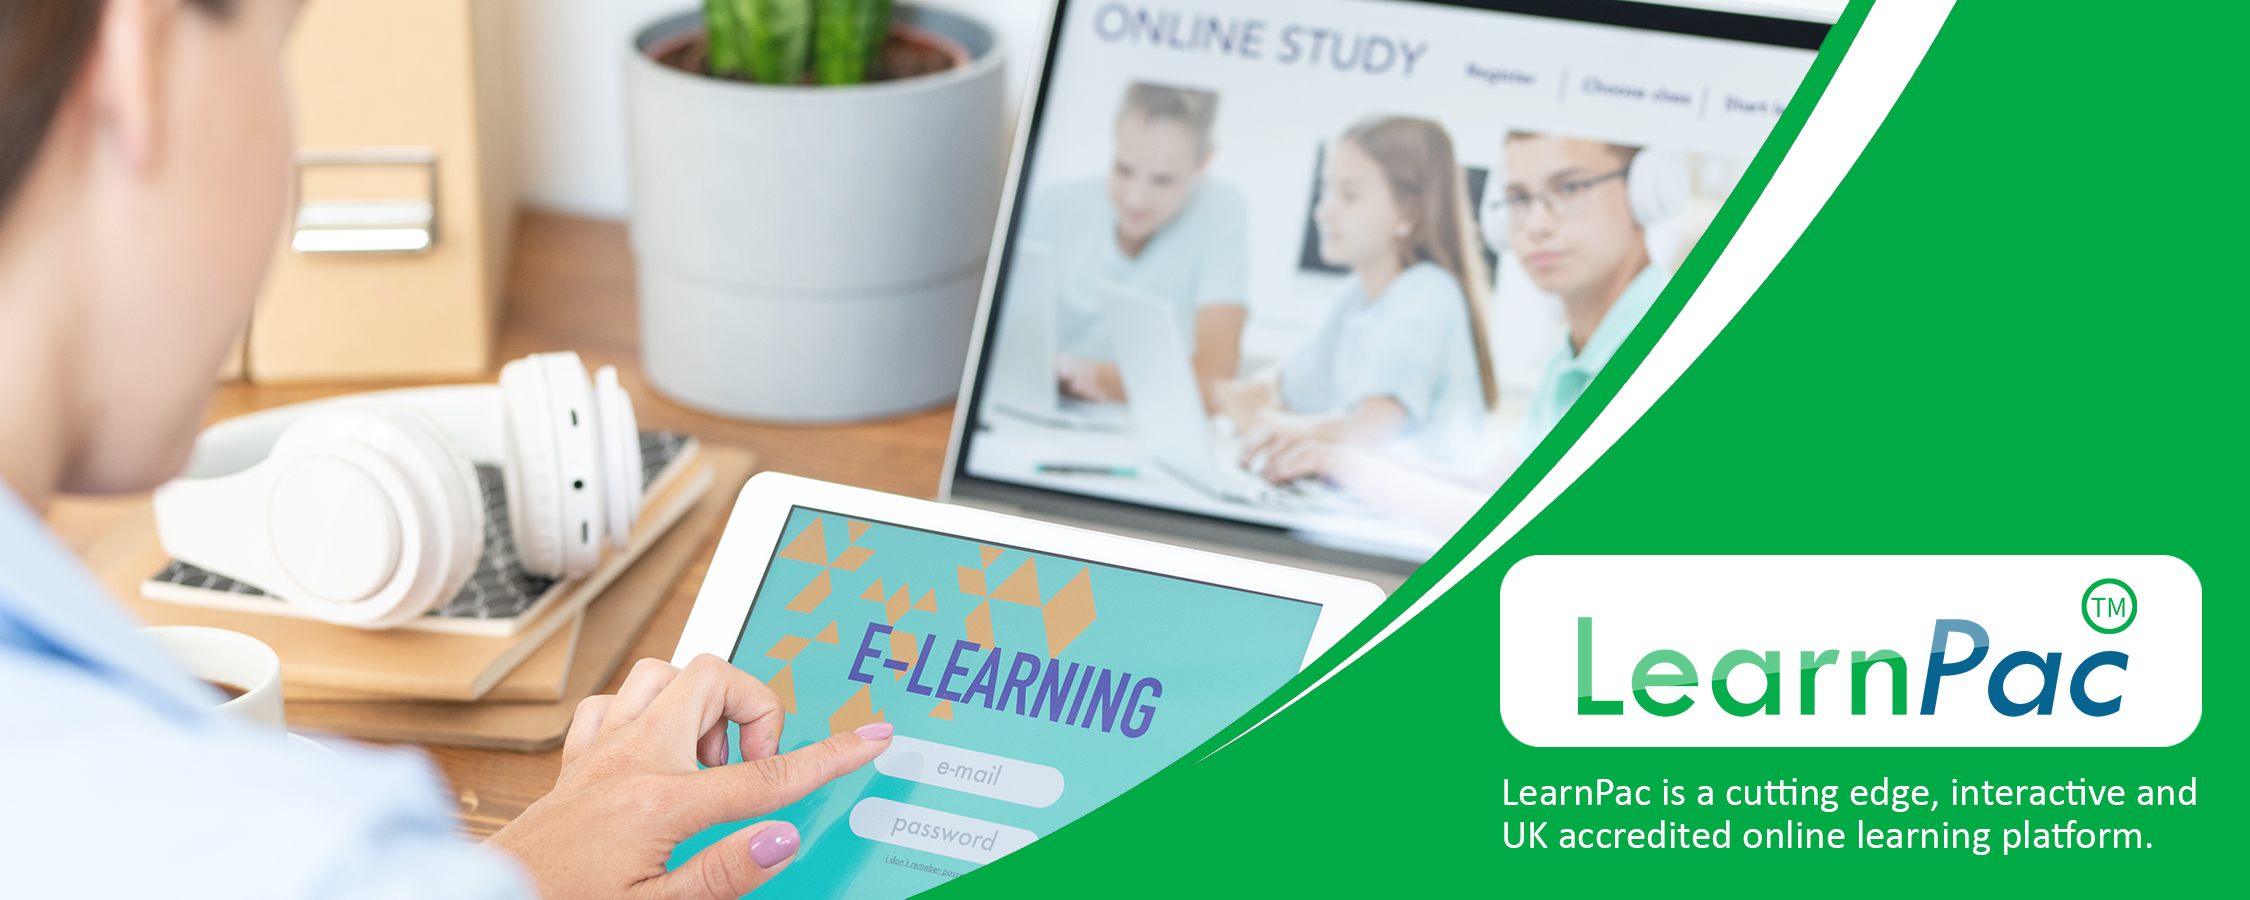 Care Certificate Standard 14 - E-Learning Courses - LearnPac Systems UK -